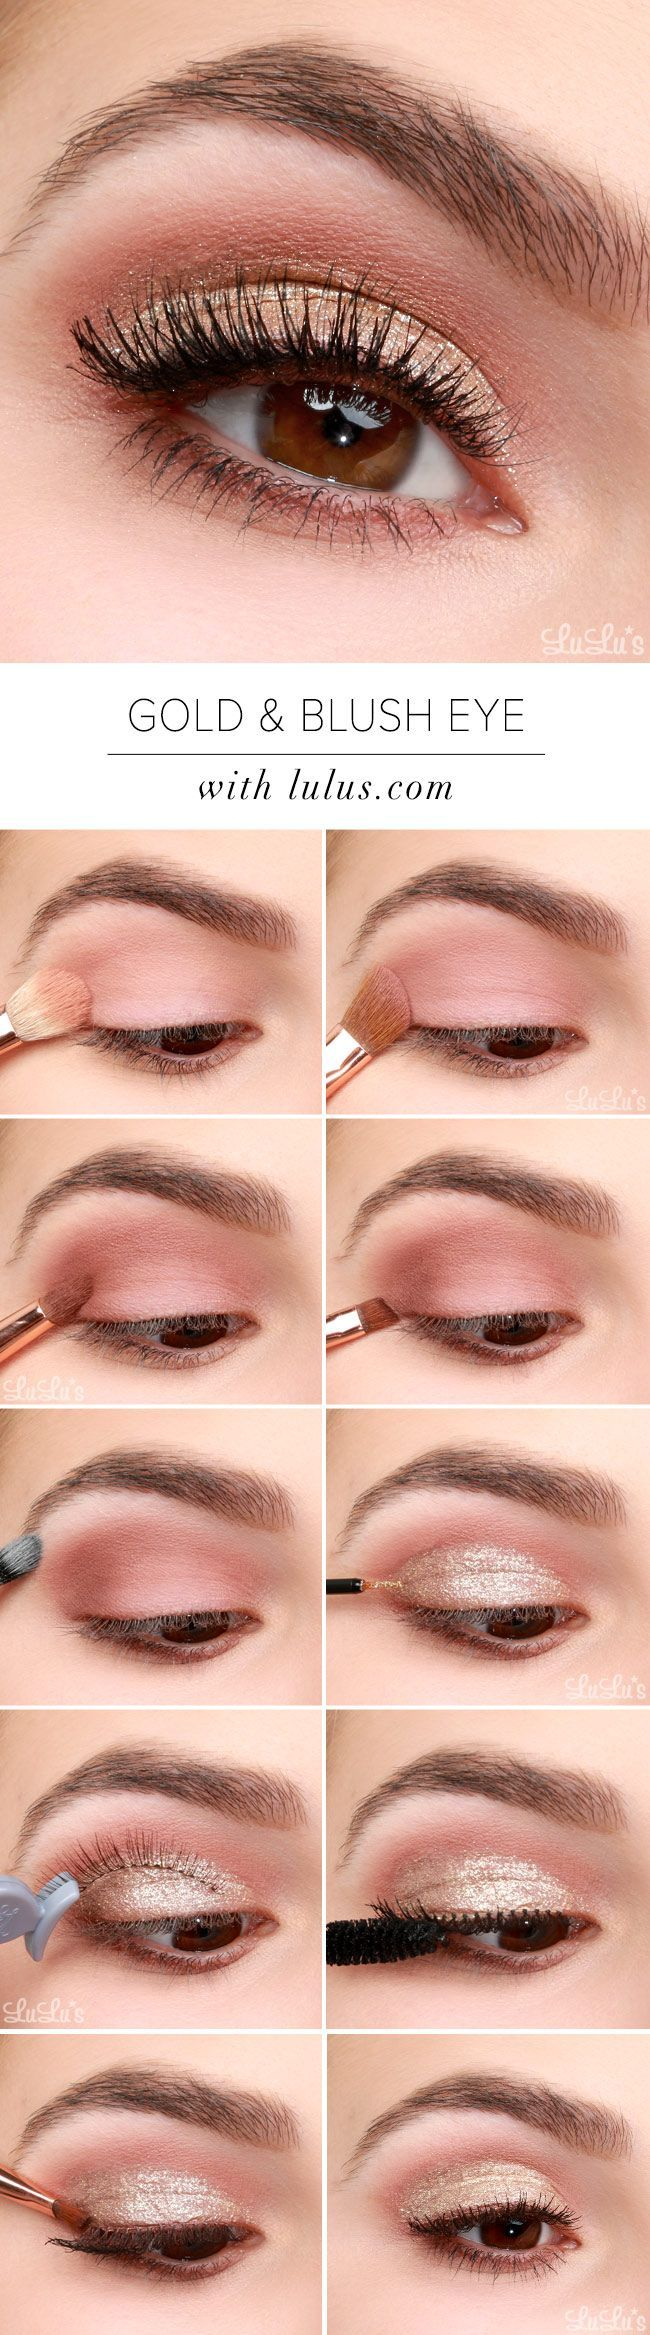 Lulus How-To: Gold and Blush Valentine's Day Eye Makeup Tutorial